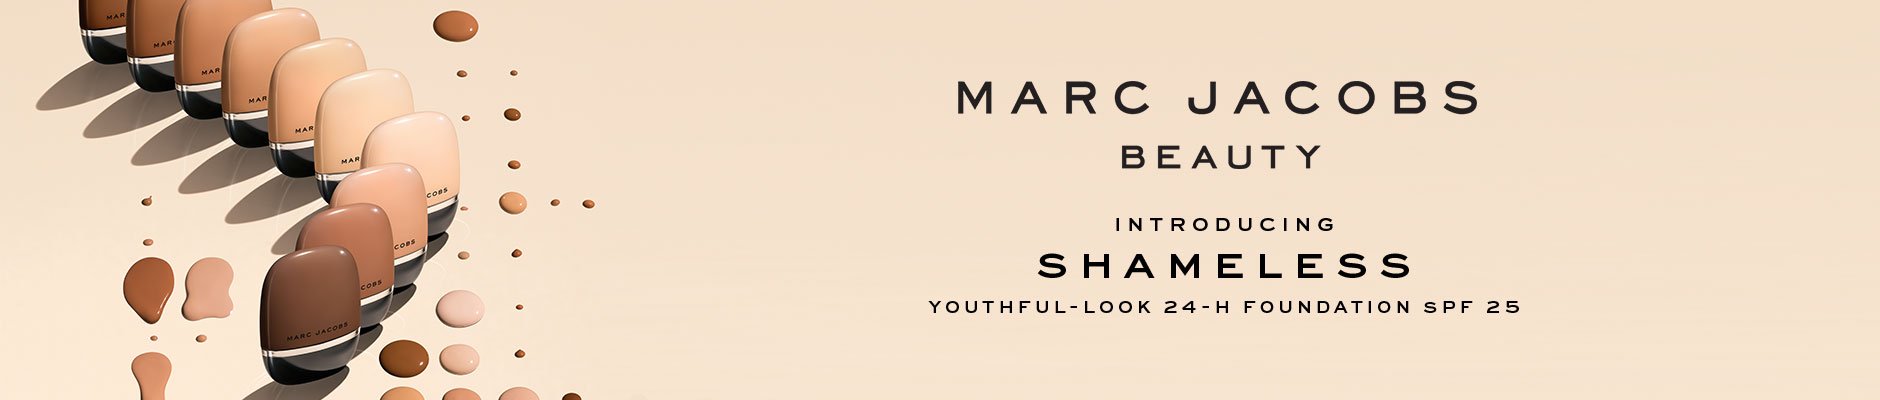 Marc Jacobs Beauty - Introducing Shameless Foundation SPF 25